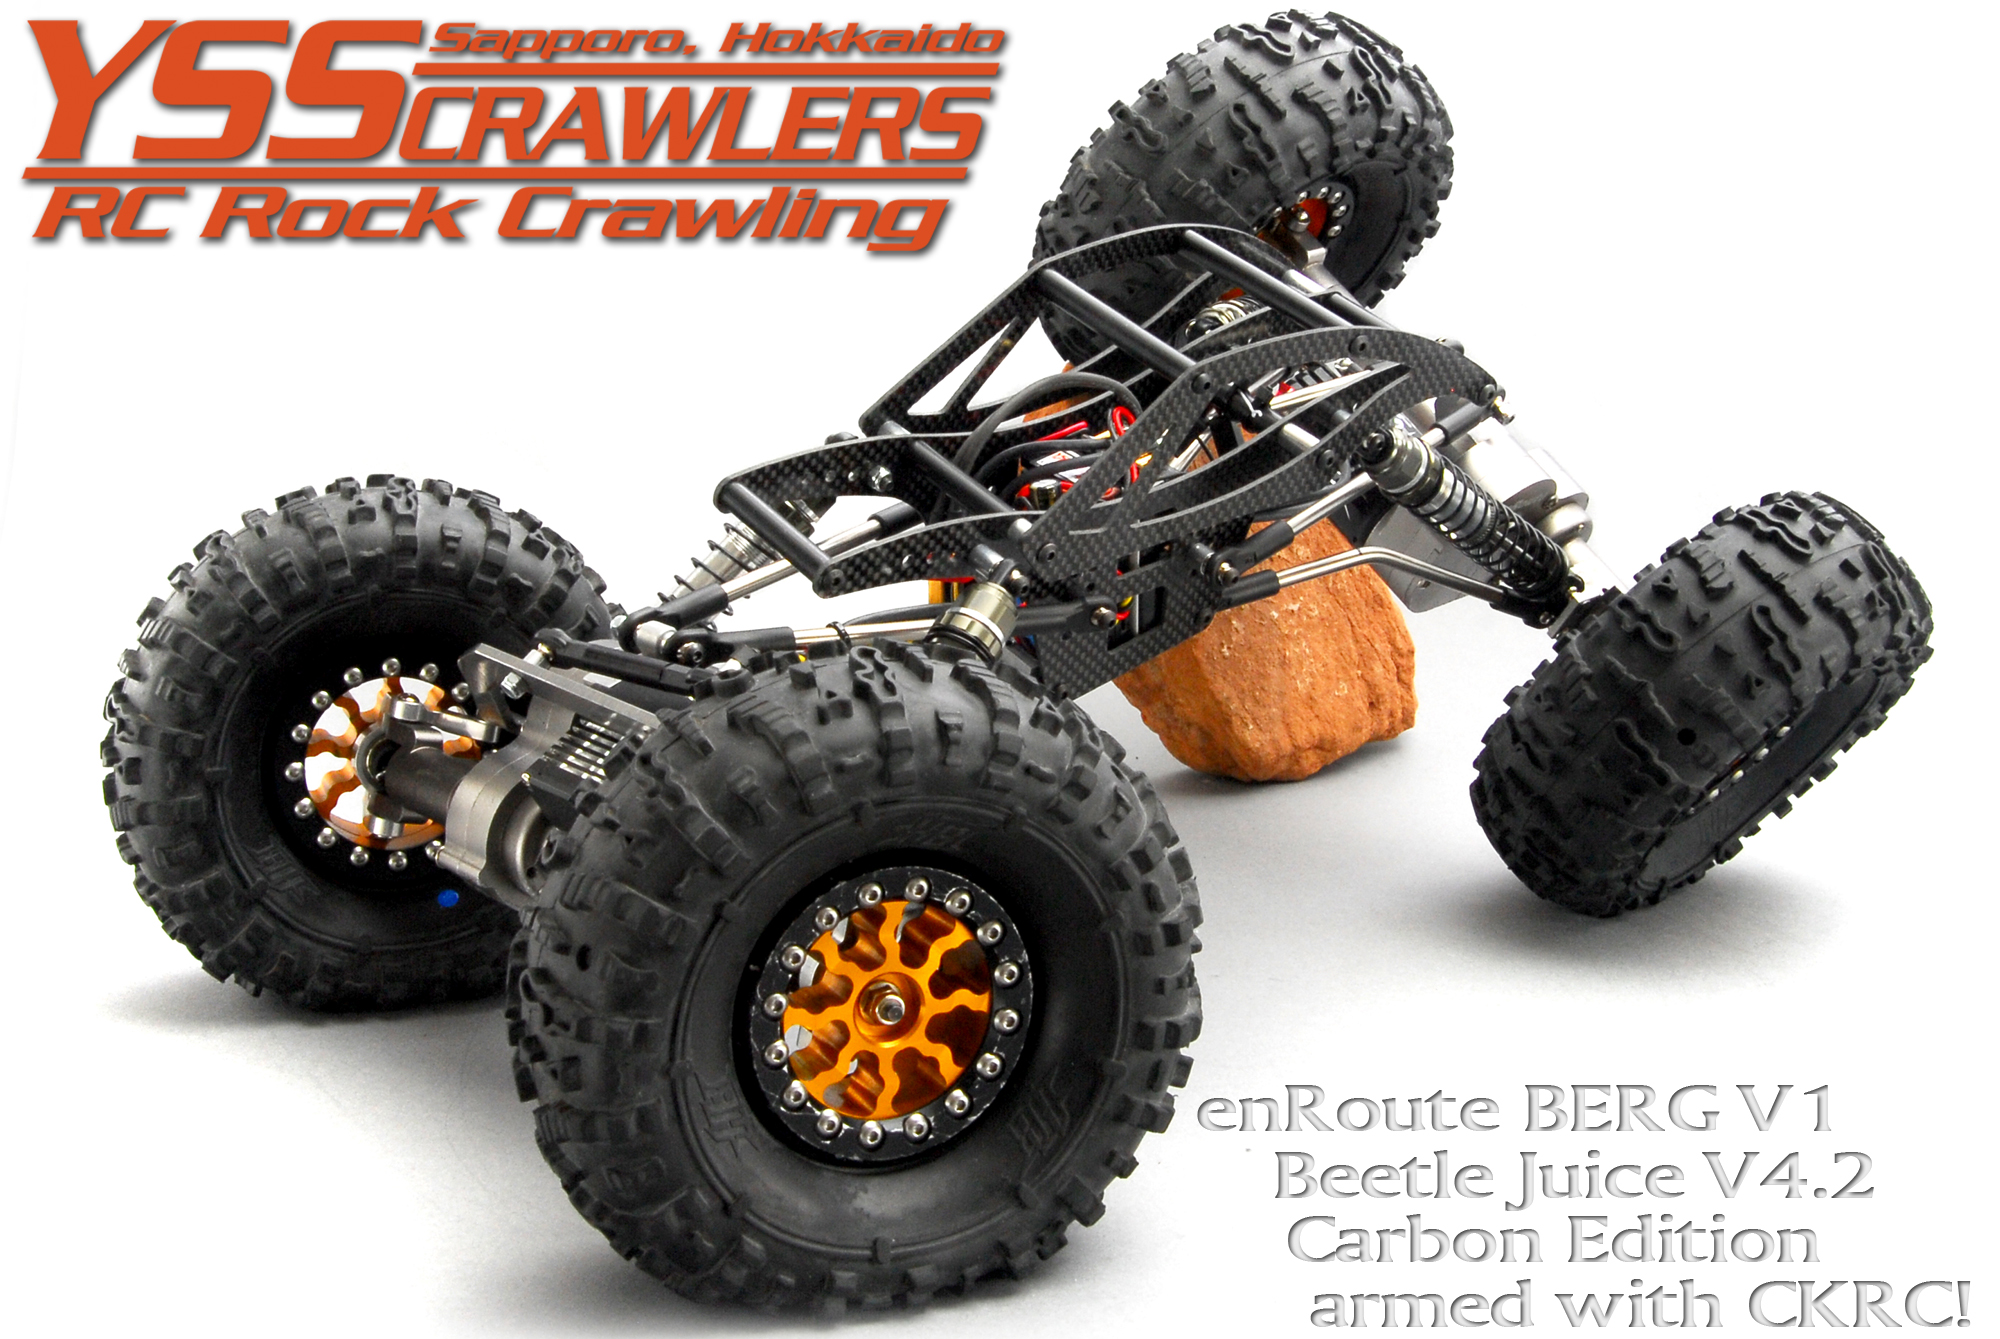 rc rock crawler wiring diagram converting to electricity